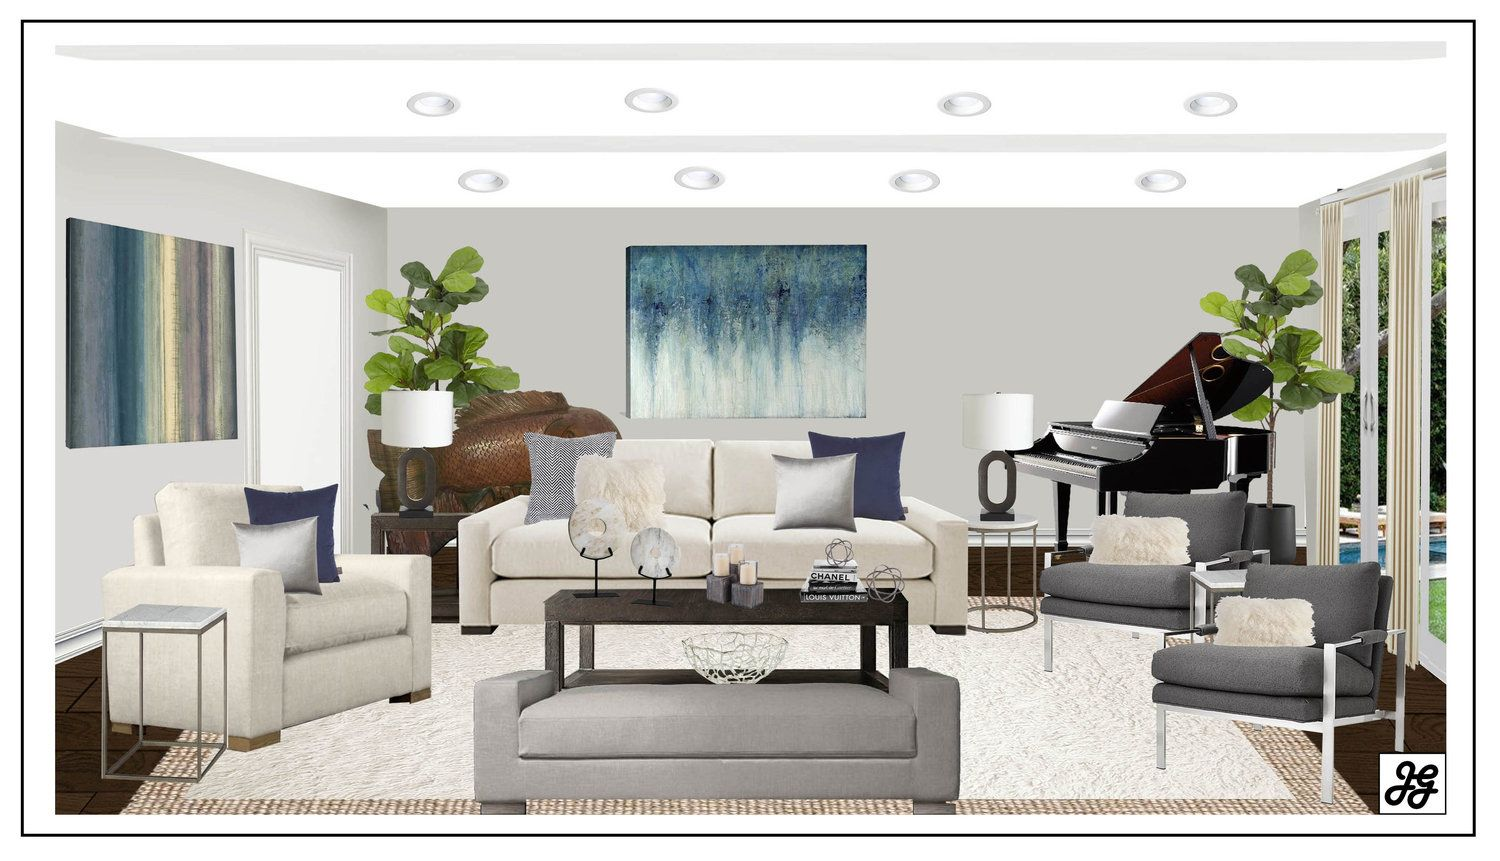 Living Room Design Online Amazing Contemporary Living Room Design Board Modern Farmhouse Living Room Decorating Design